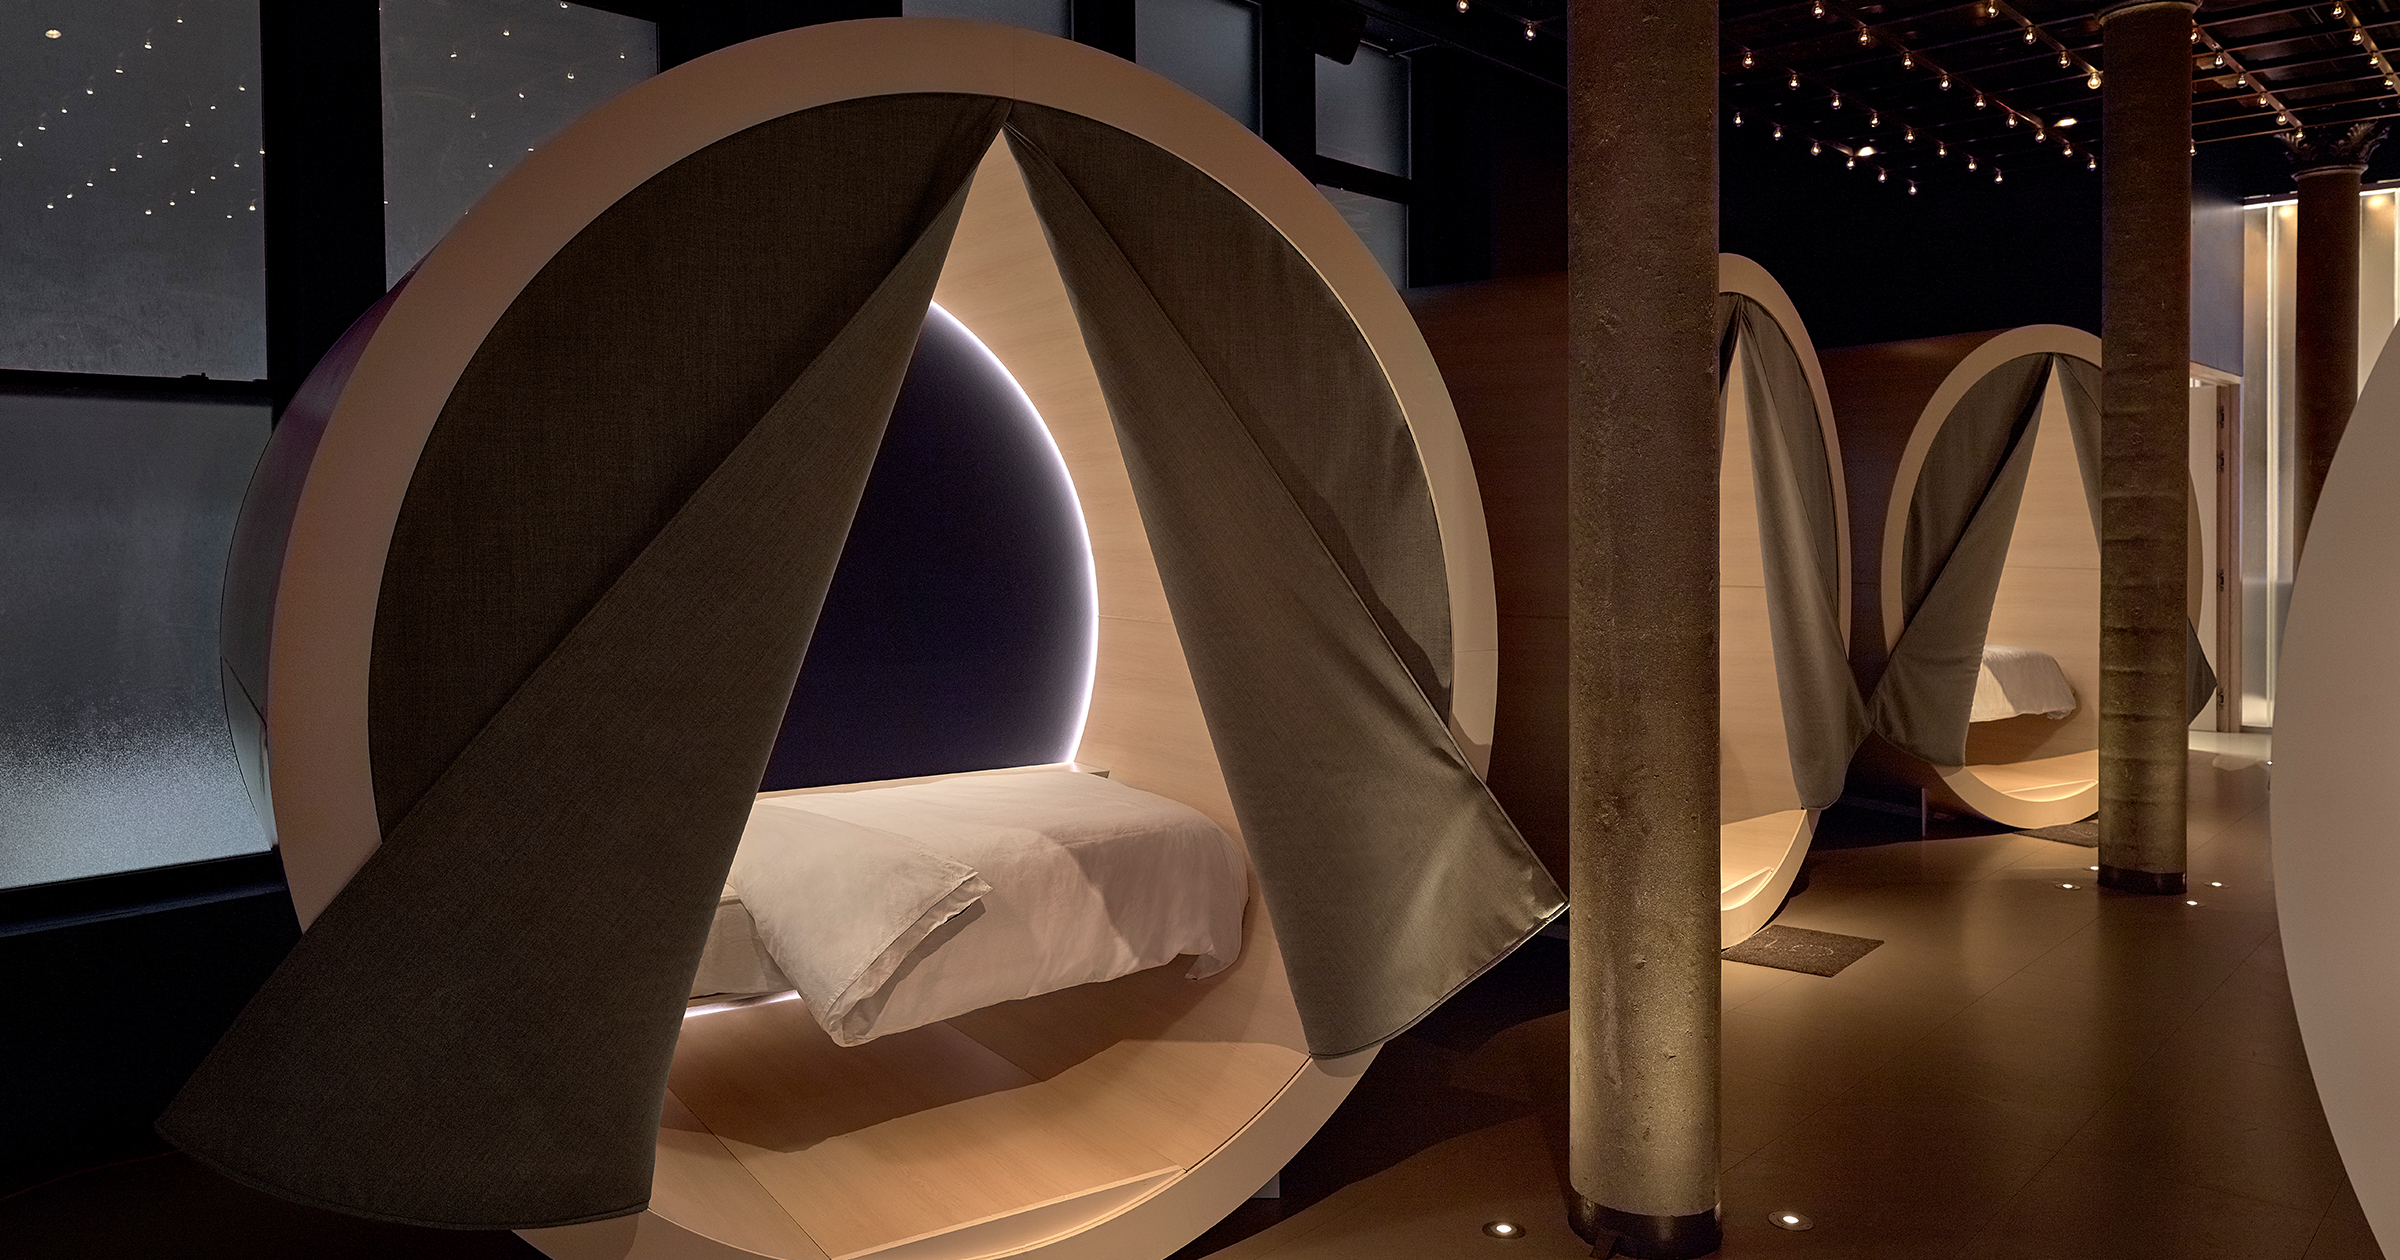 Nap time for grown-ups: will sleeping pods catch on?